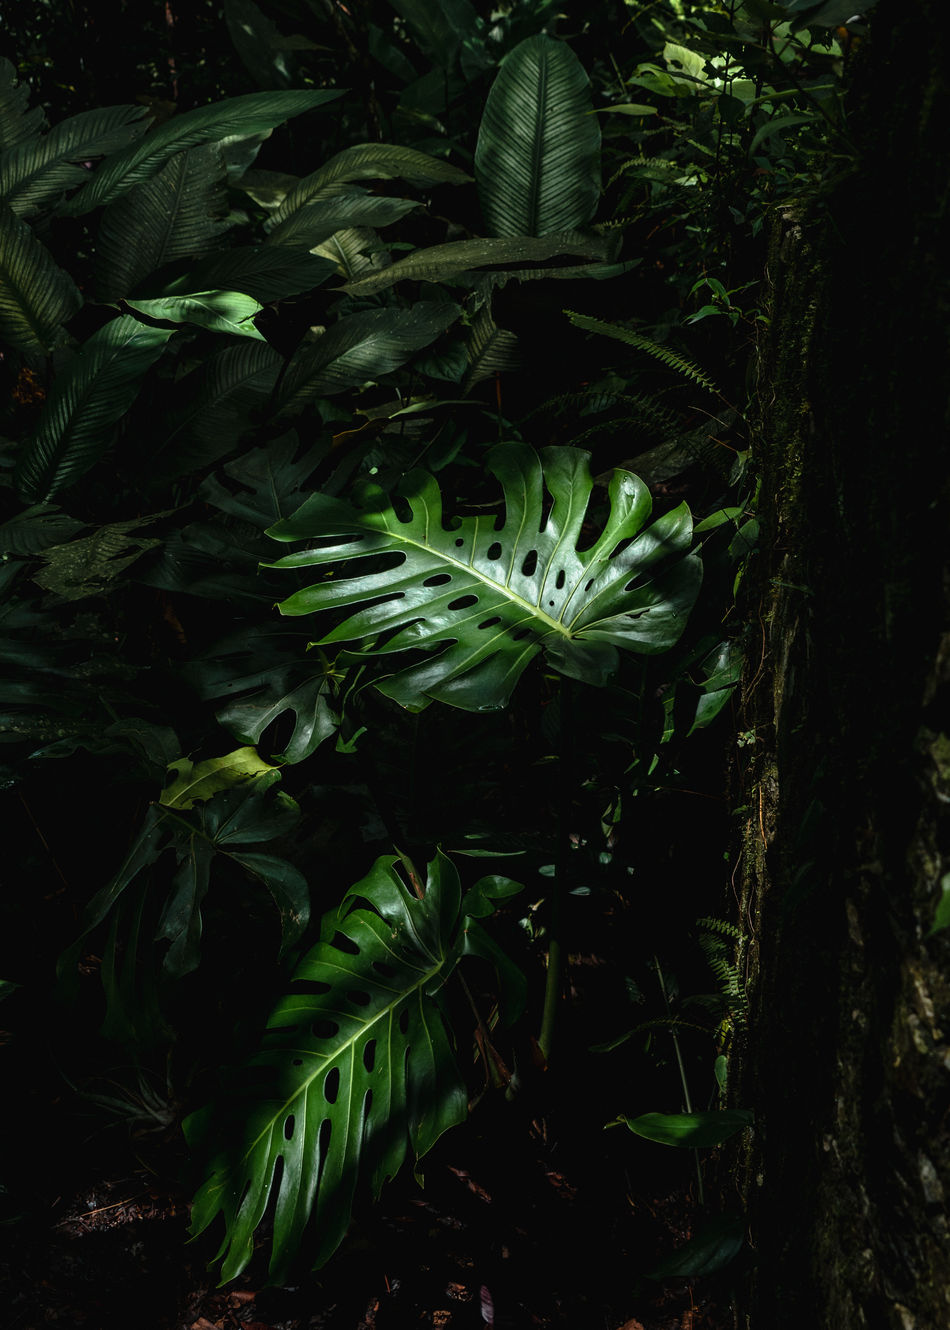 Abstract Photography Backgrounds Beauty In Nature Black Background Close-up Composition Constrast Day Fineartphotography Freshness Green Color Growth Leaf Leaves Light And Shadow Lush Foliage Nature Nature_collection No People Outdoors Plant Tree Xilitla Art Is Everywhere